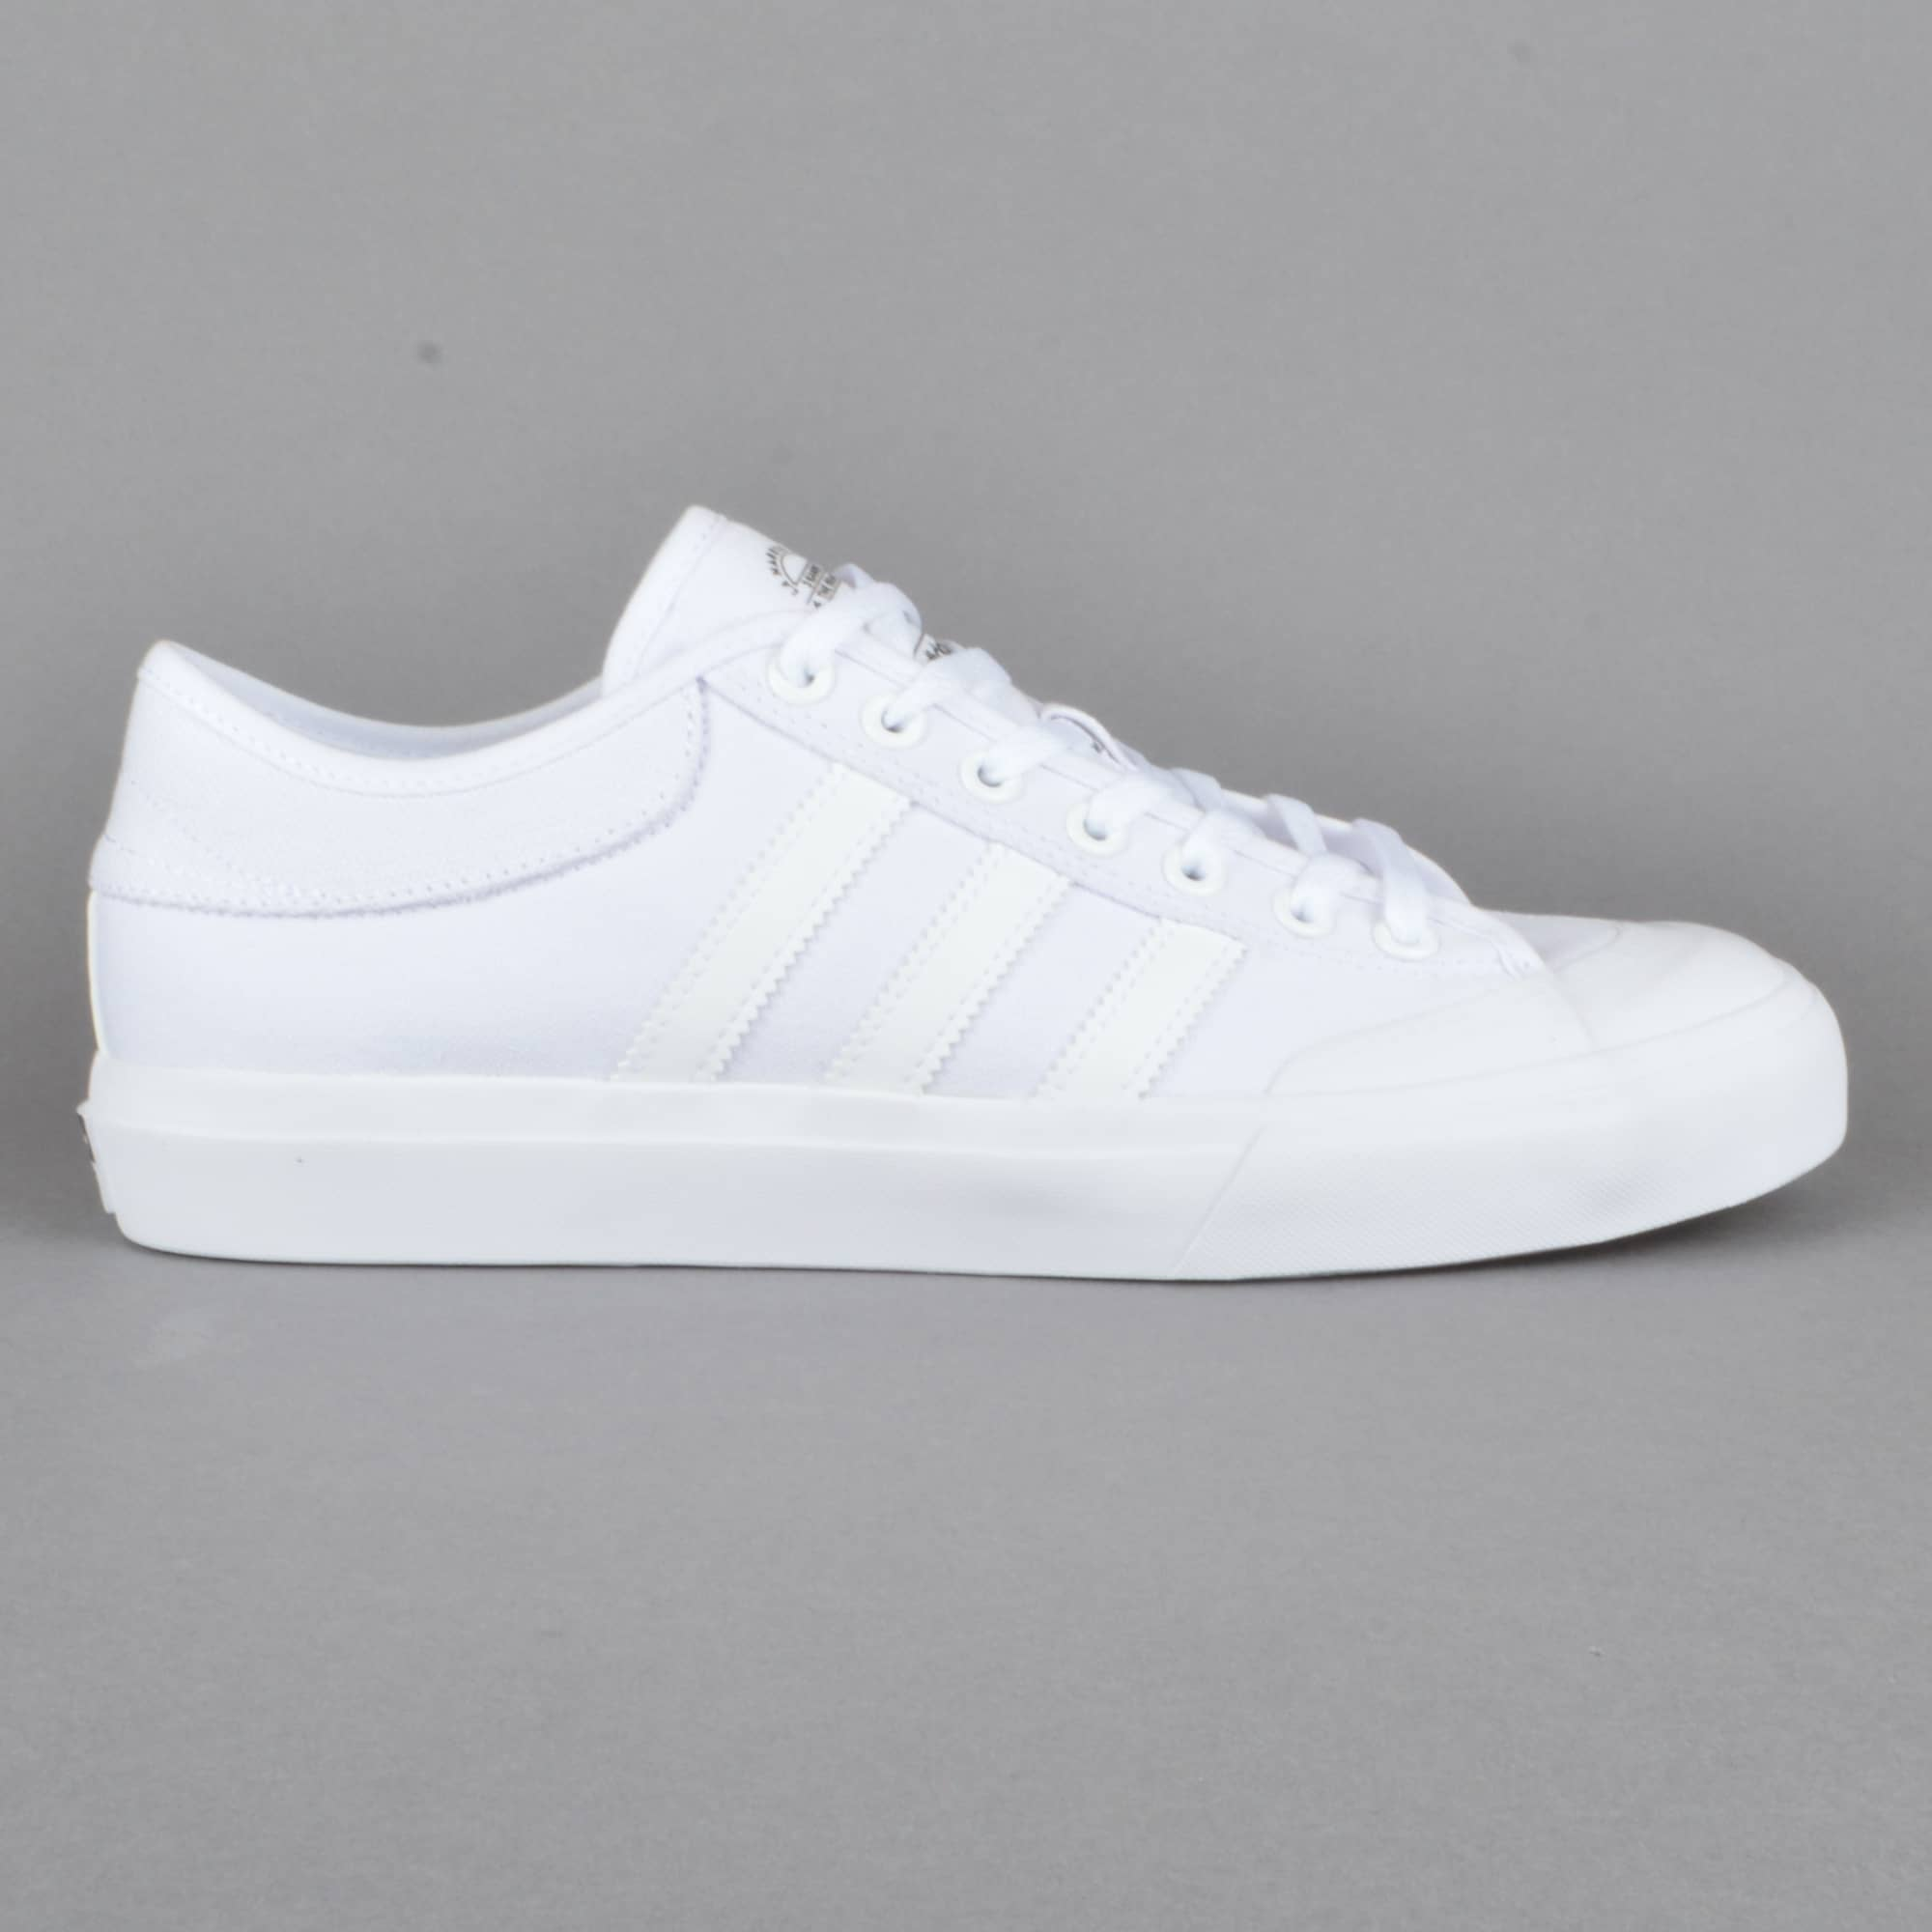 interior esqueleto periodista  Adidas Skateboarding Matchcourt SKate Shoes - FTWWHT/FTWWHT/FTWWHT - SKATE  SHOES from Native Skate Store UK